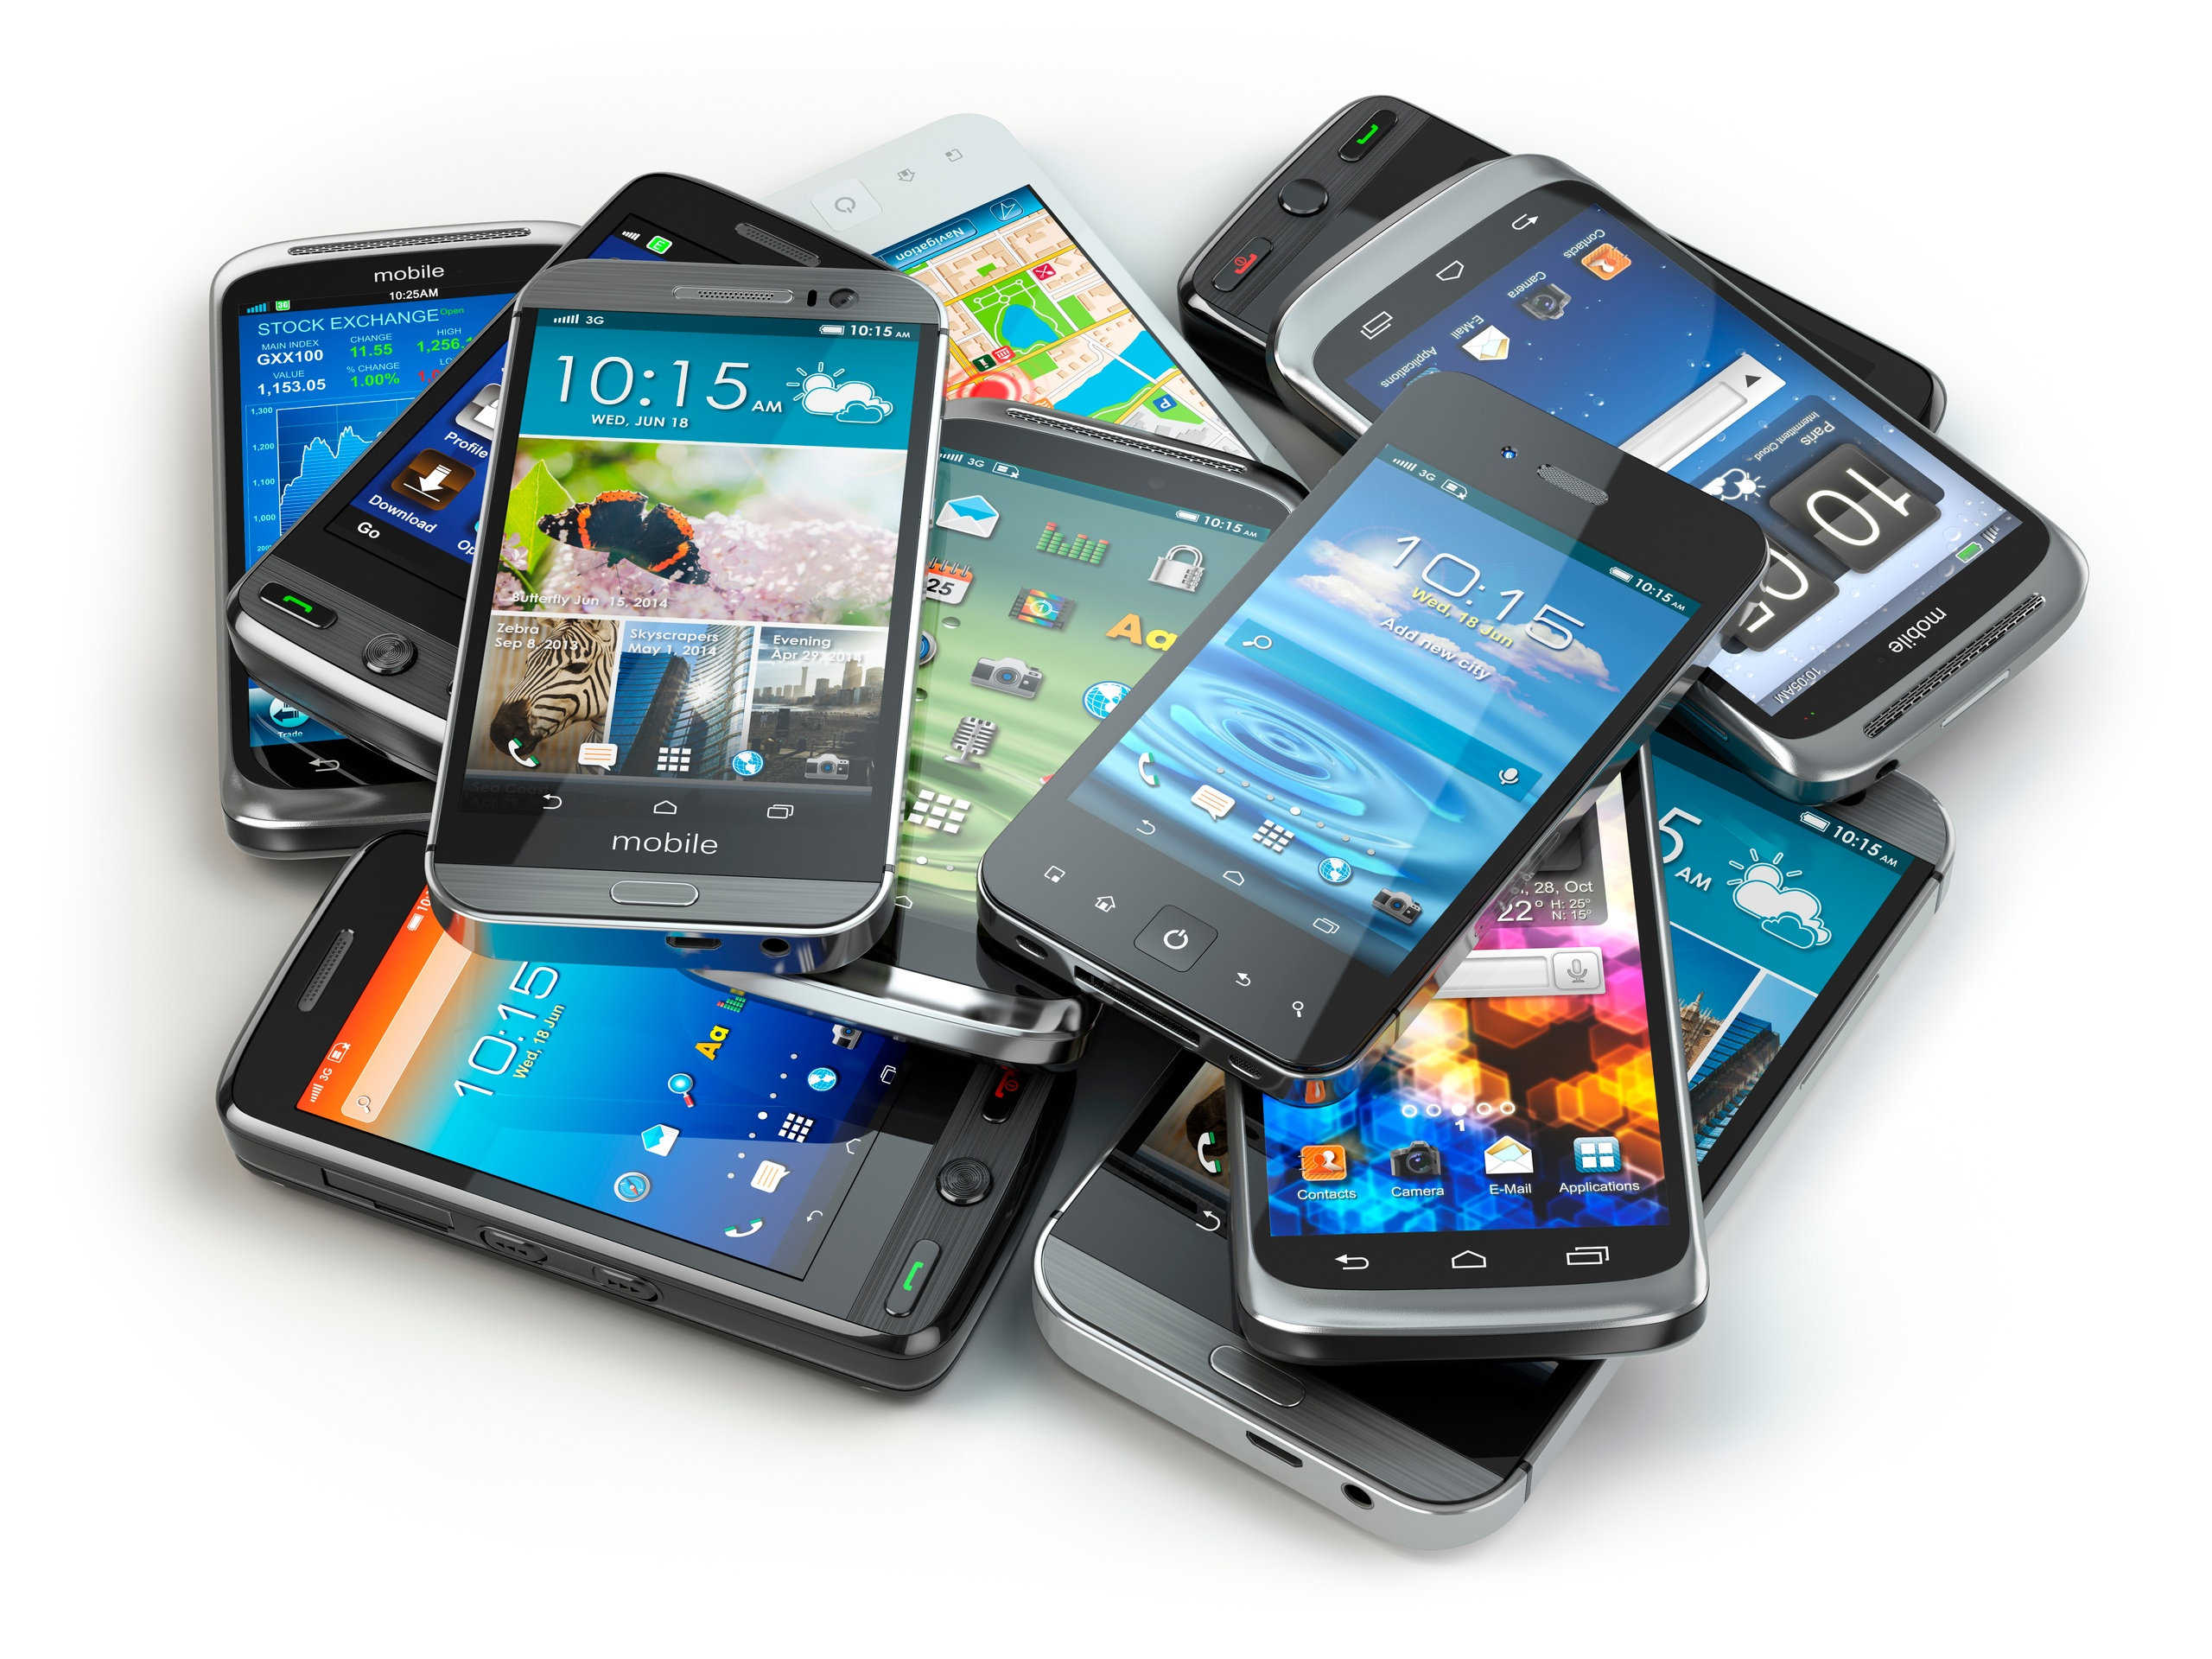 quadrooter affects 900 million android devices